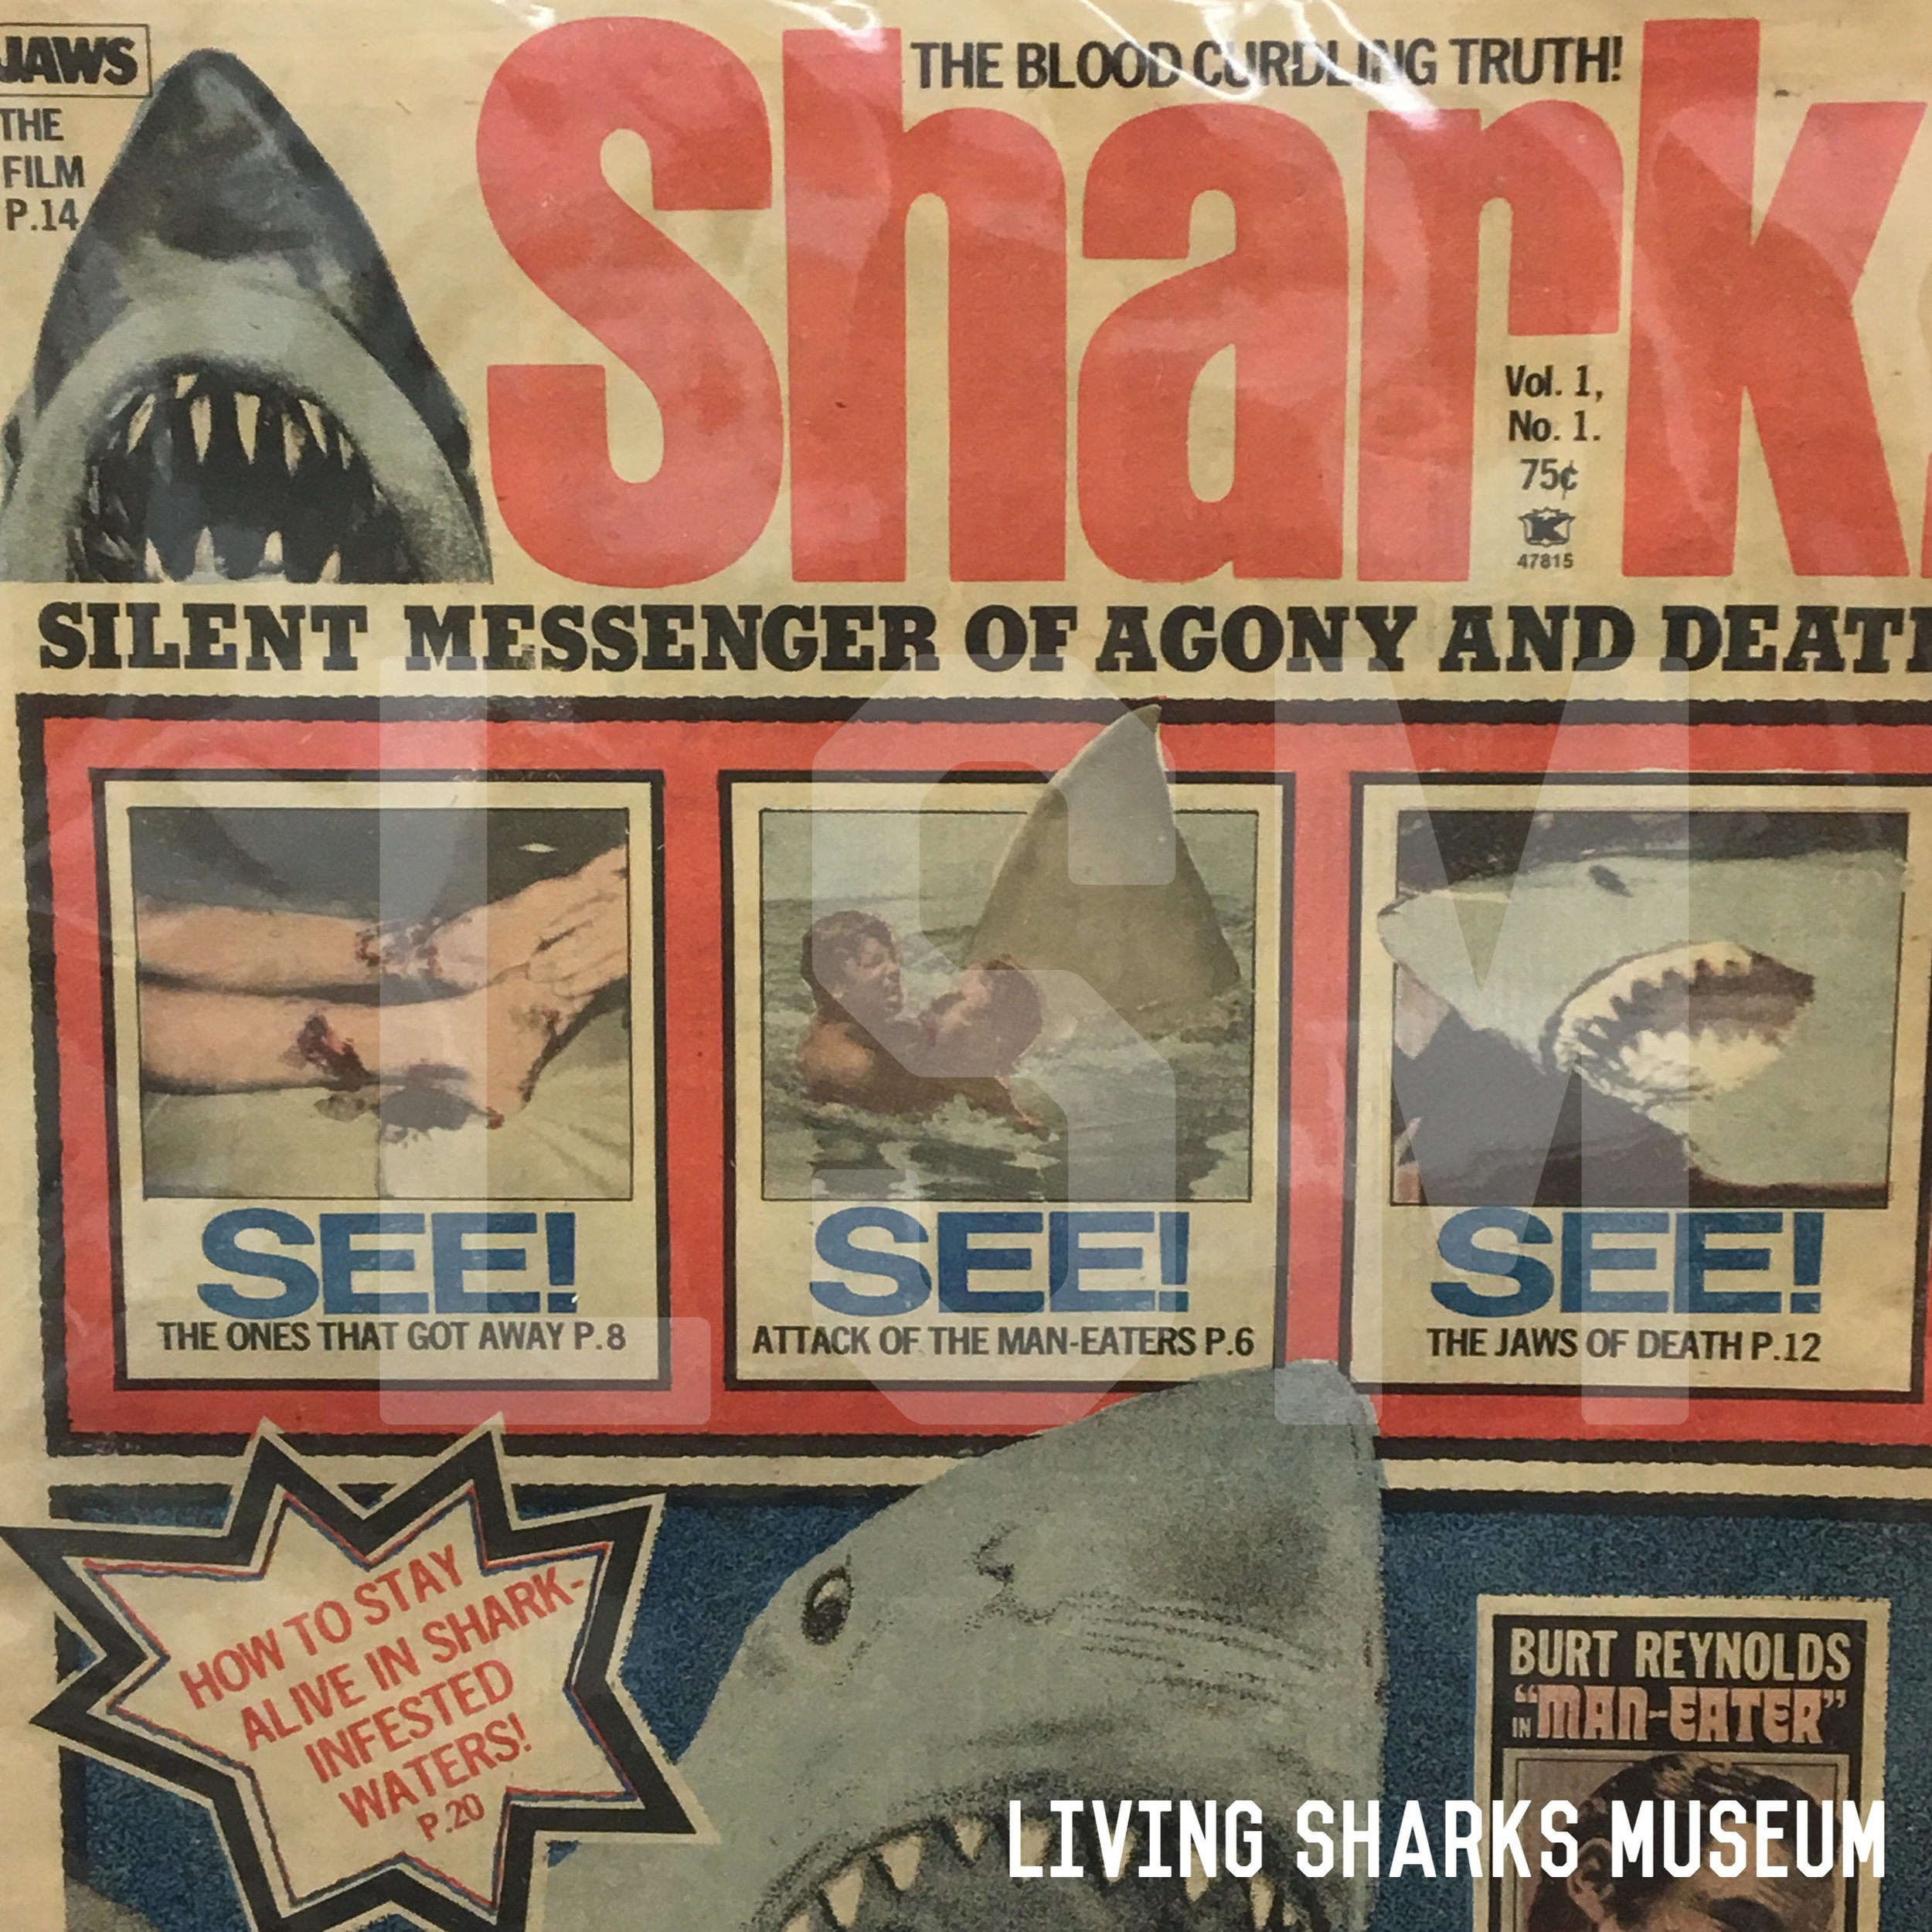 """SHARKSPLOITATION - Once Jaws hit the big screen, endless souvenirs were made depicting the man-eating shark. Few actual photographs existed since at the time (1970-1976) only Ron & Valerie Taylor had published underwater photos of Great Whites from (and outside of) the new """"shark cage"""". Note the menacing """"open jaws"""" in every photo.__________________SHARK EXPLOITATION MAGAZINES (1975-77)RARE OFFICIAL JAWS FILM MAGAZINES (1975)Iconic Photo by Ron & Valerie TaylorPrivate Collection - Keith M. Cowley"""